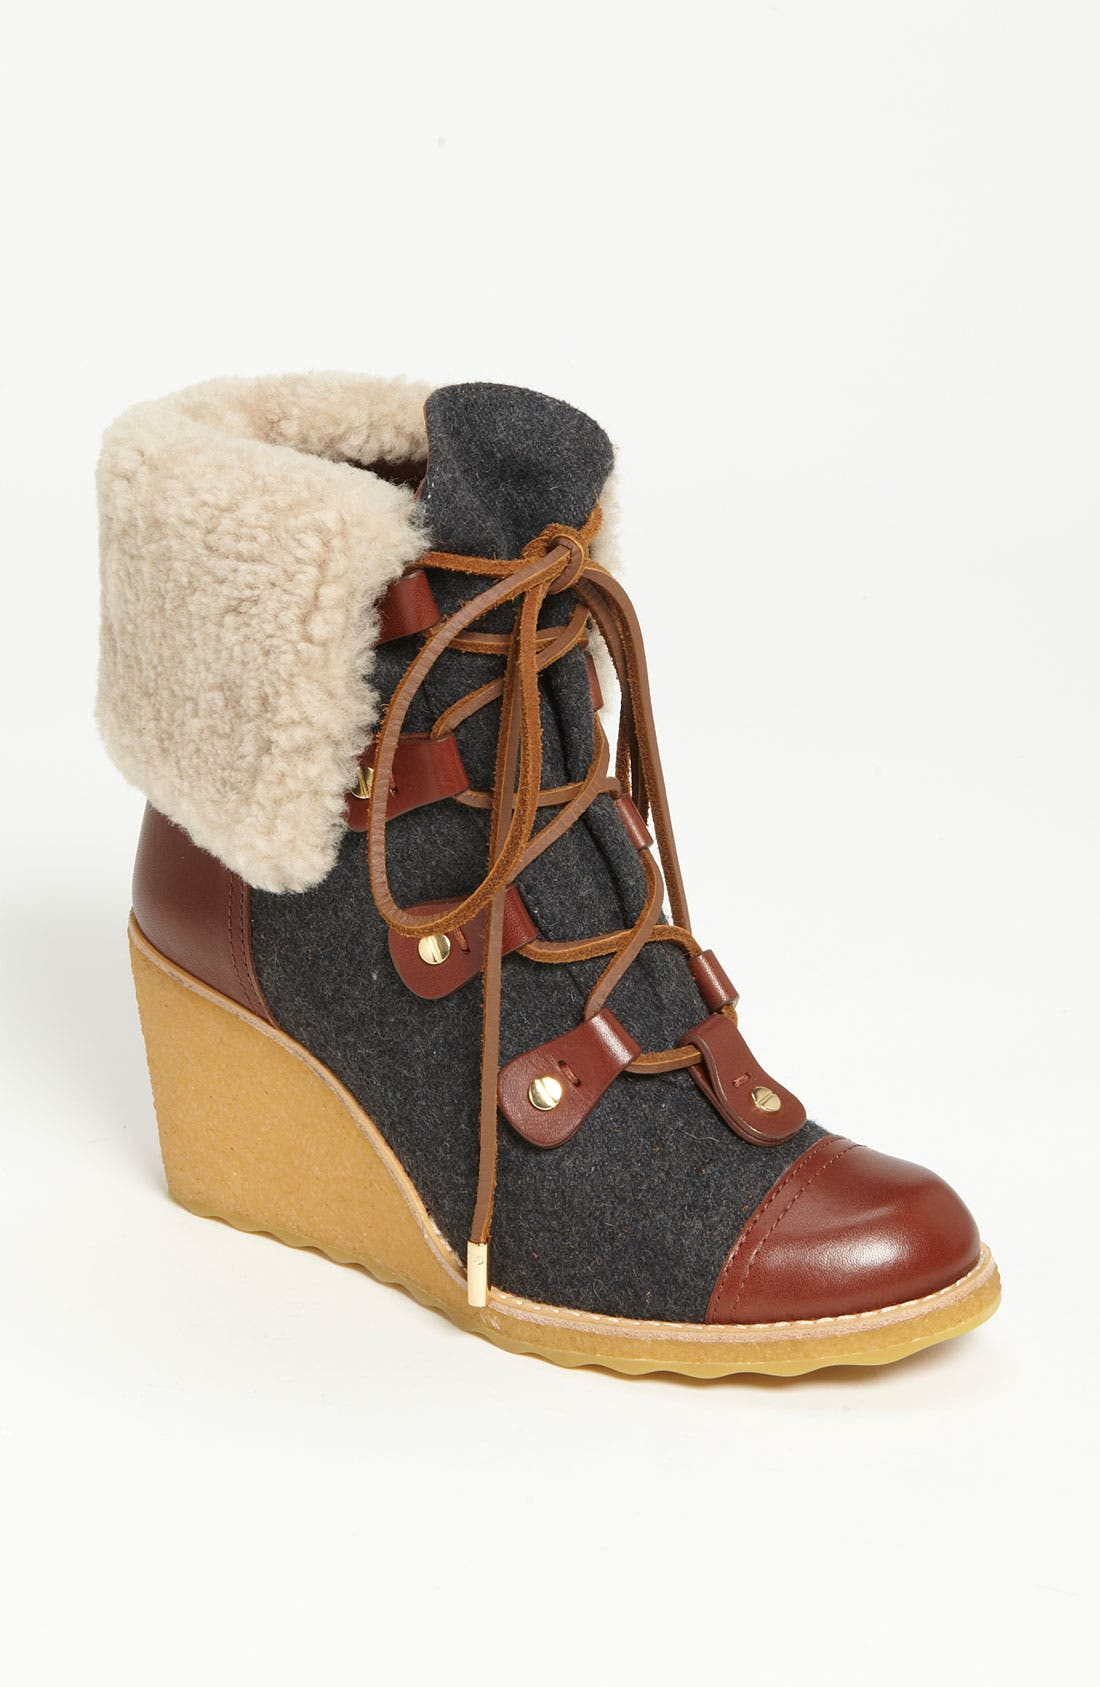 Alternate Image 1 Selected - Tory Burch 'Marley' Wedge Bootie